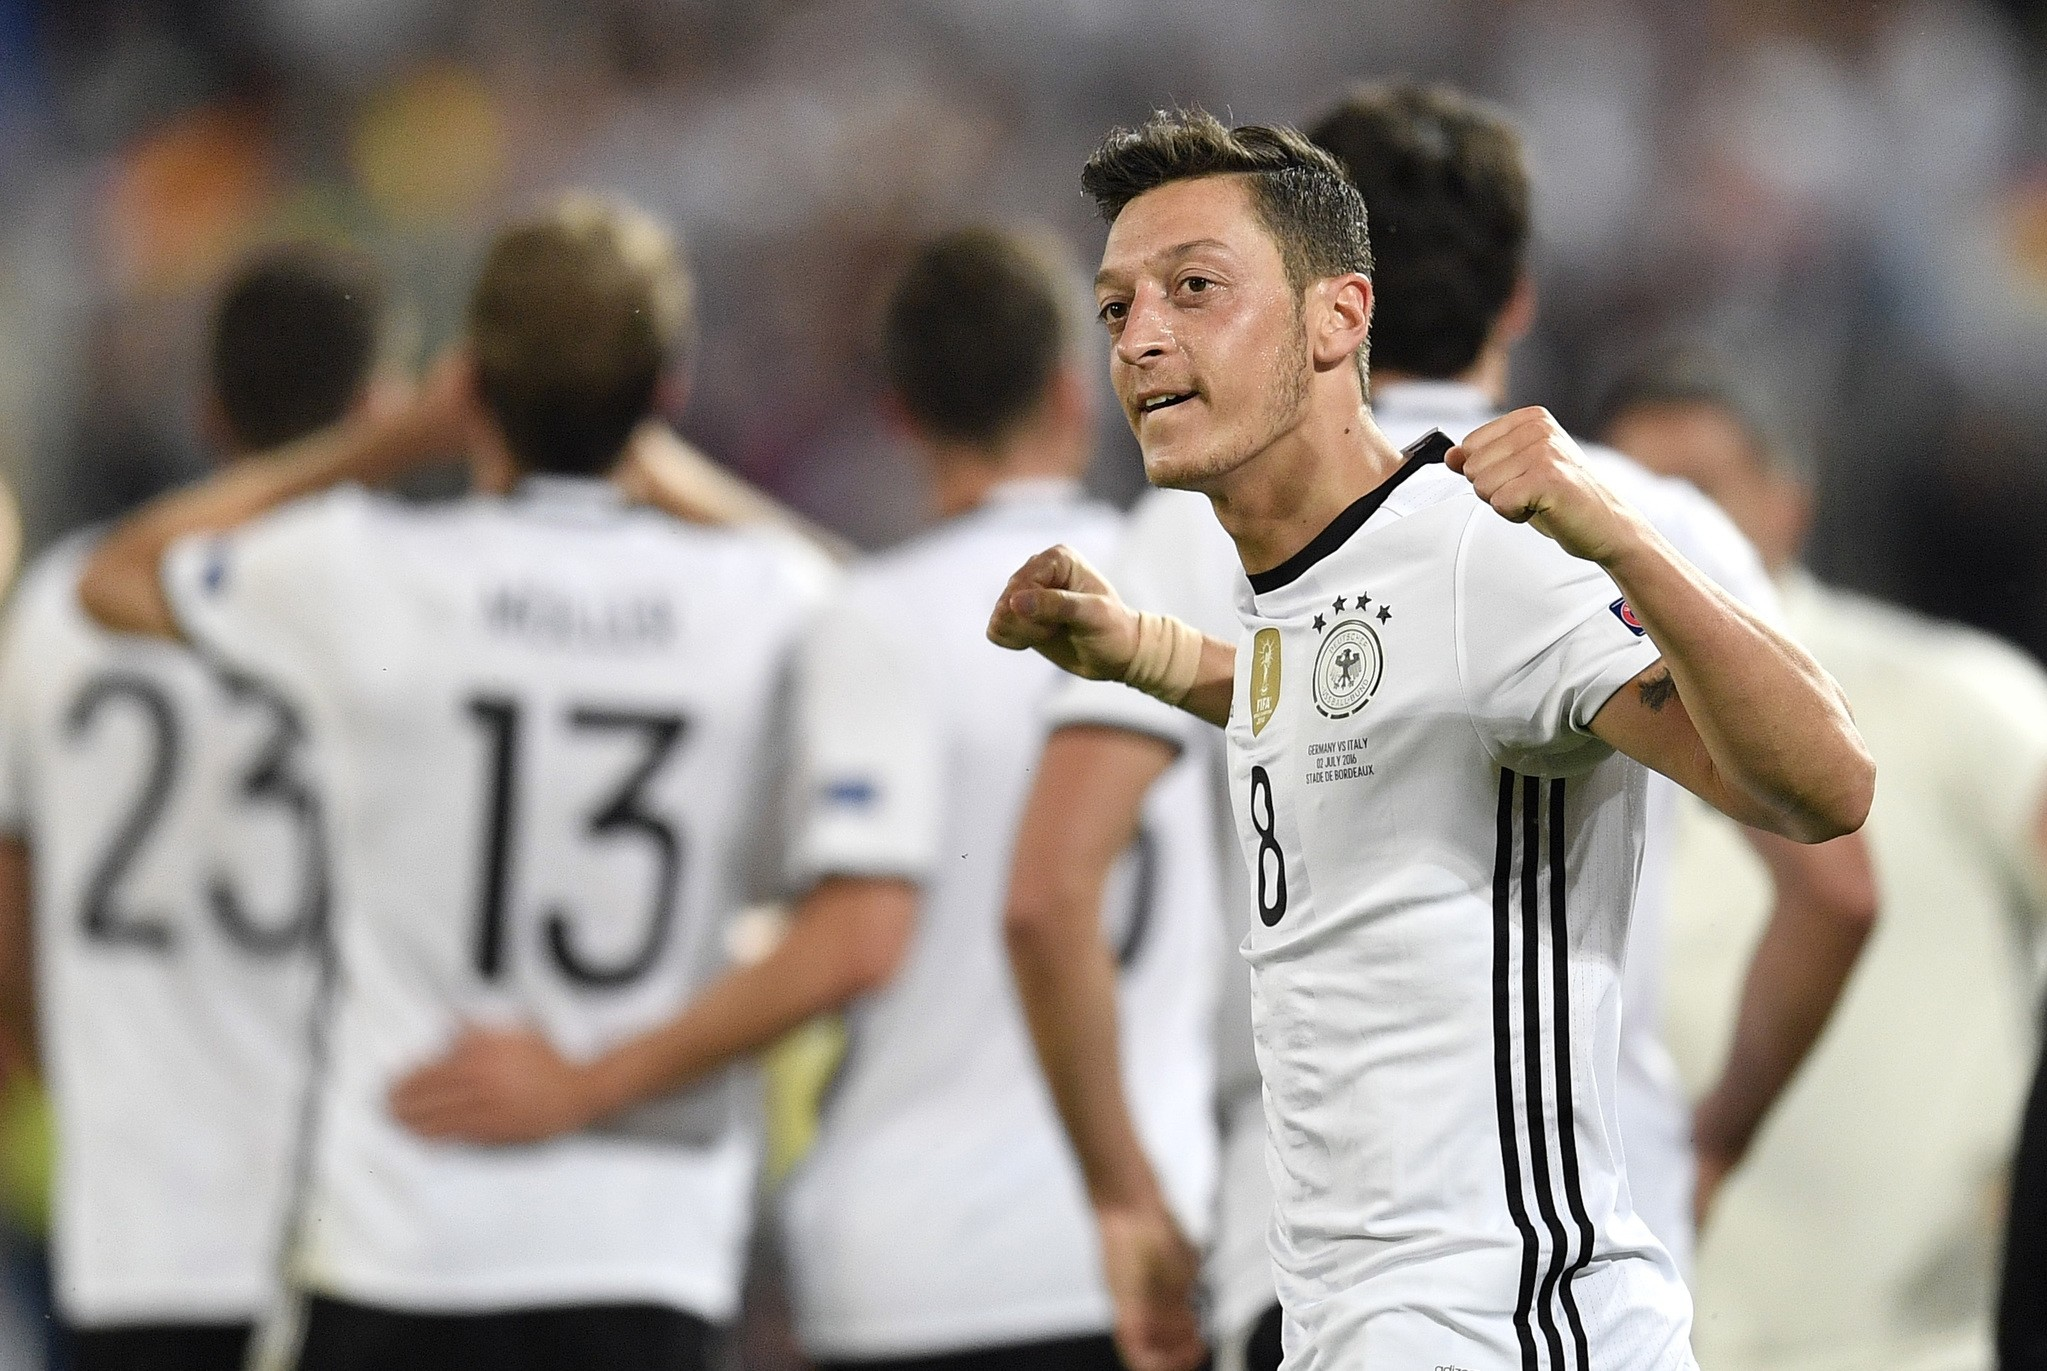 Germany's Mesut Ozil celebrates after scoring the opening goal during the Euro 2016 quarterfinal soccer match between Germany and Italy. (AP Photo)